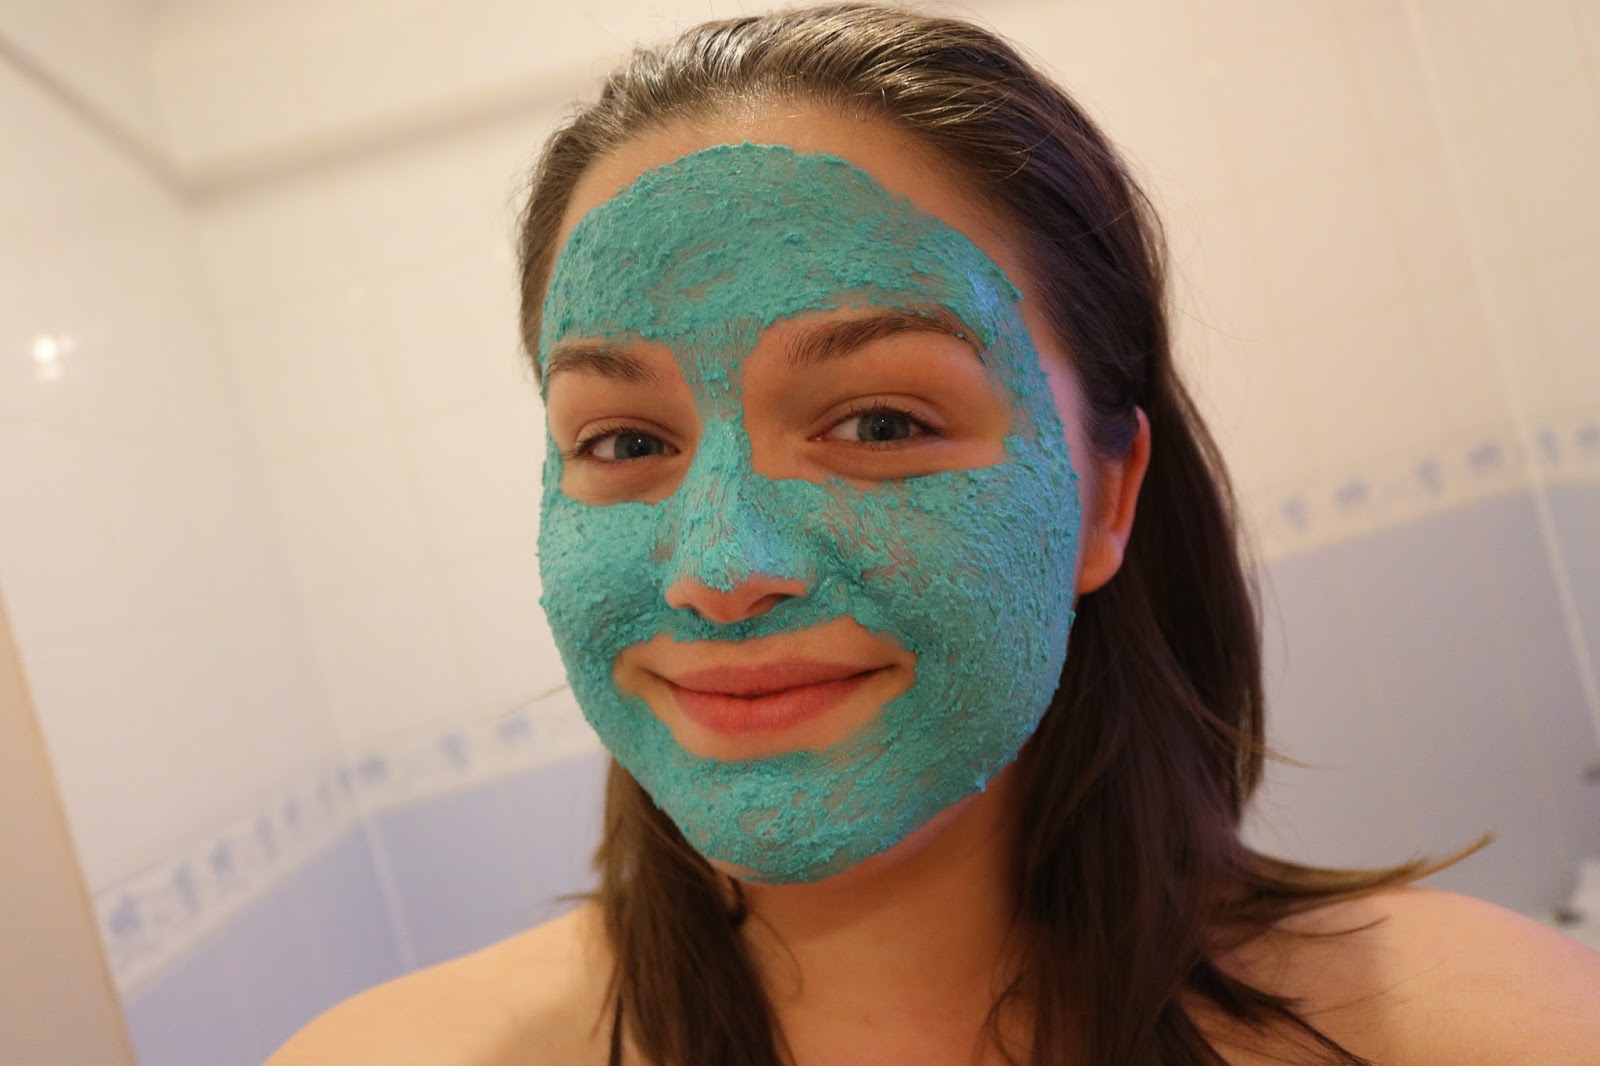 Dont look at me lush face mask review - If Any Of You Have Read My Reviews Before You Ll Know That I Have Quite Troublesome Skin My Skin Is Quite Oily And I M Always Dealing With Spots And